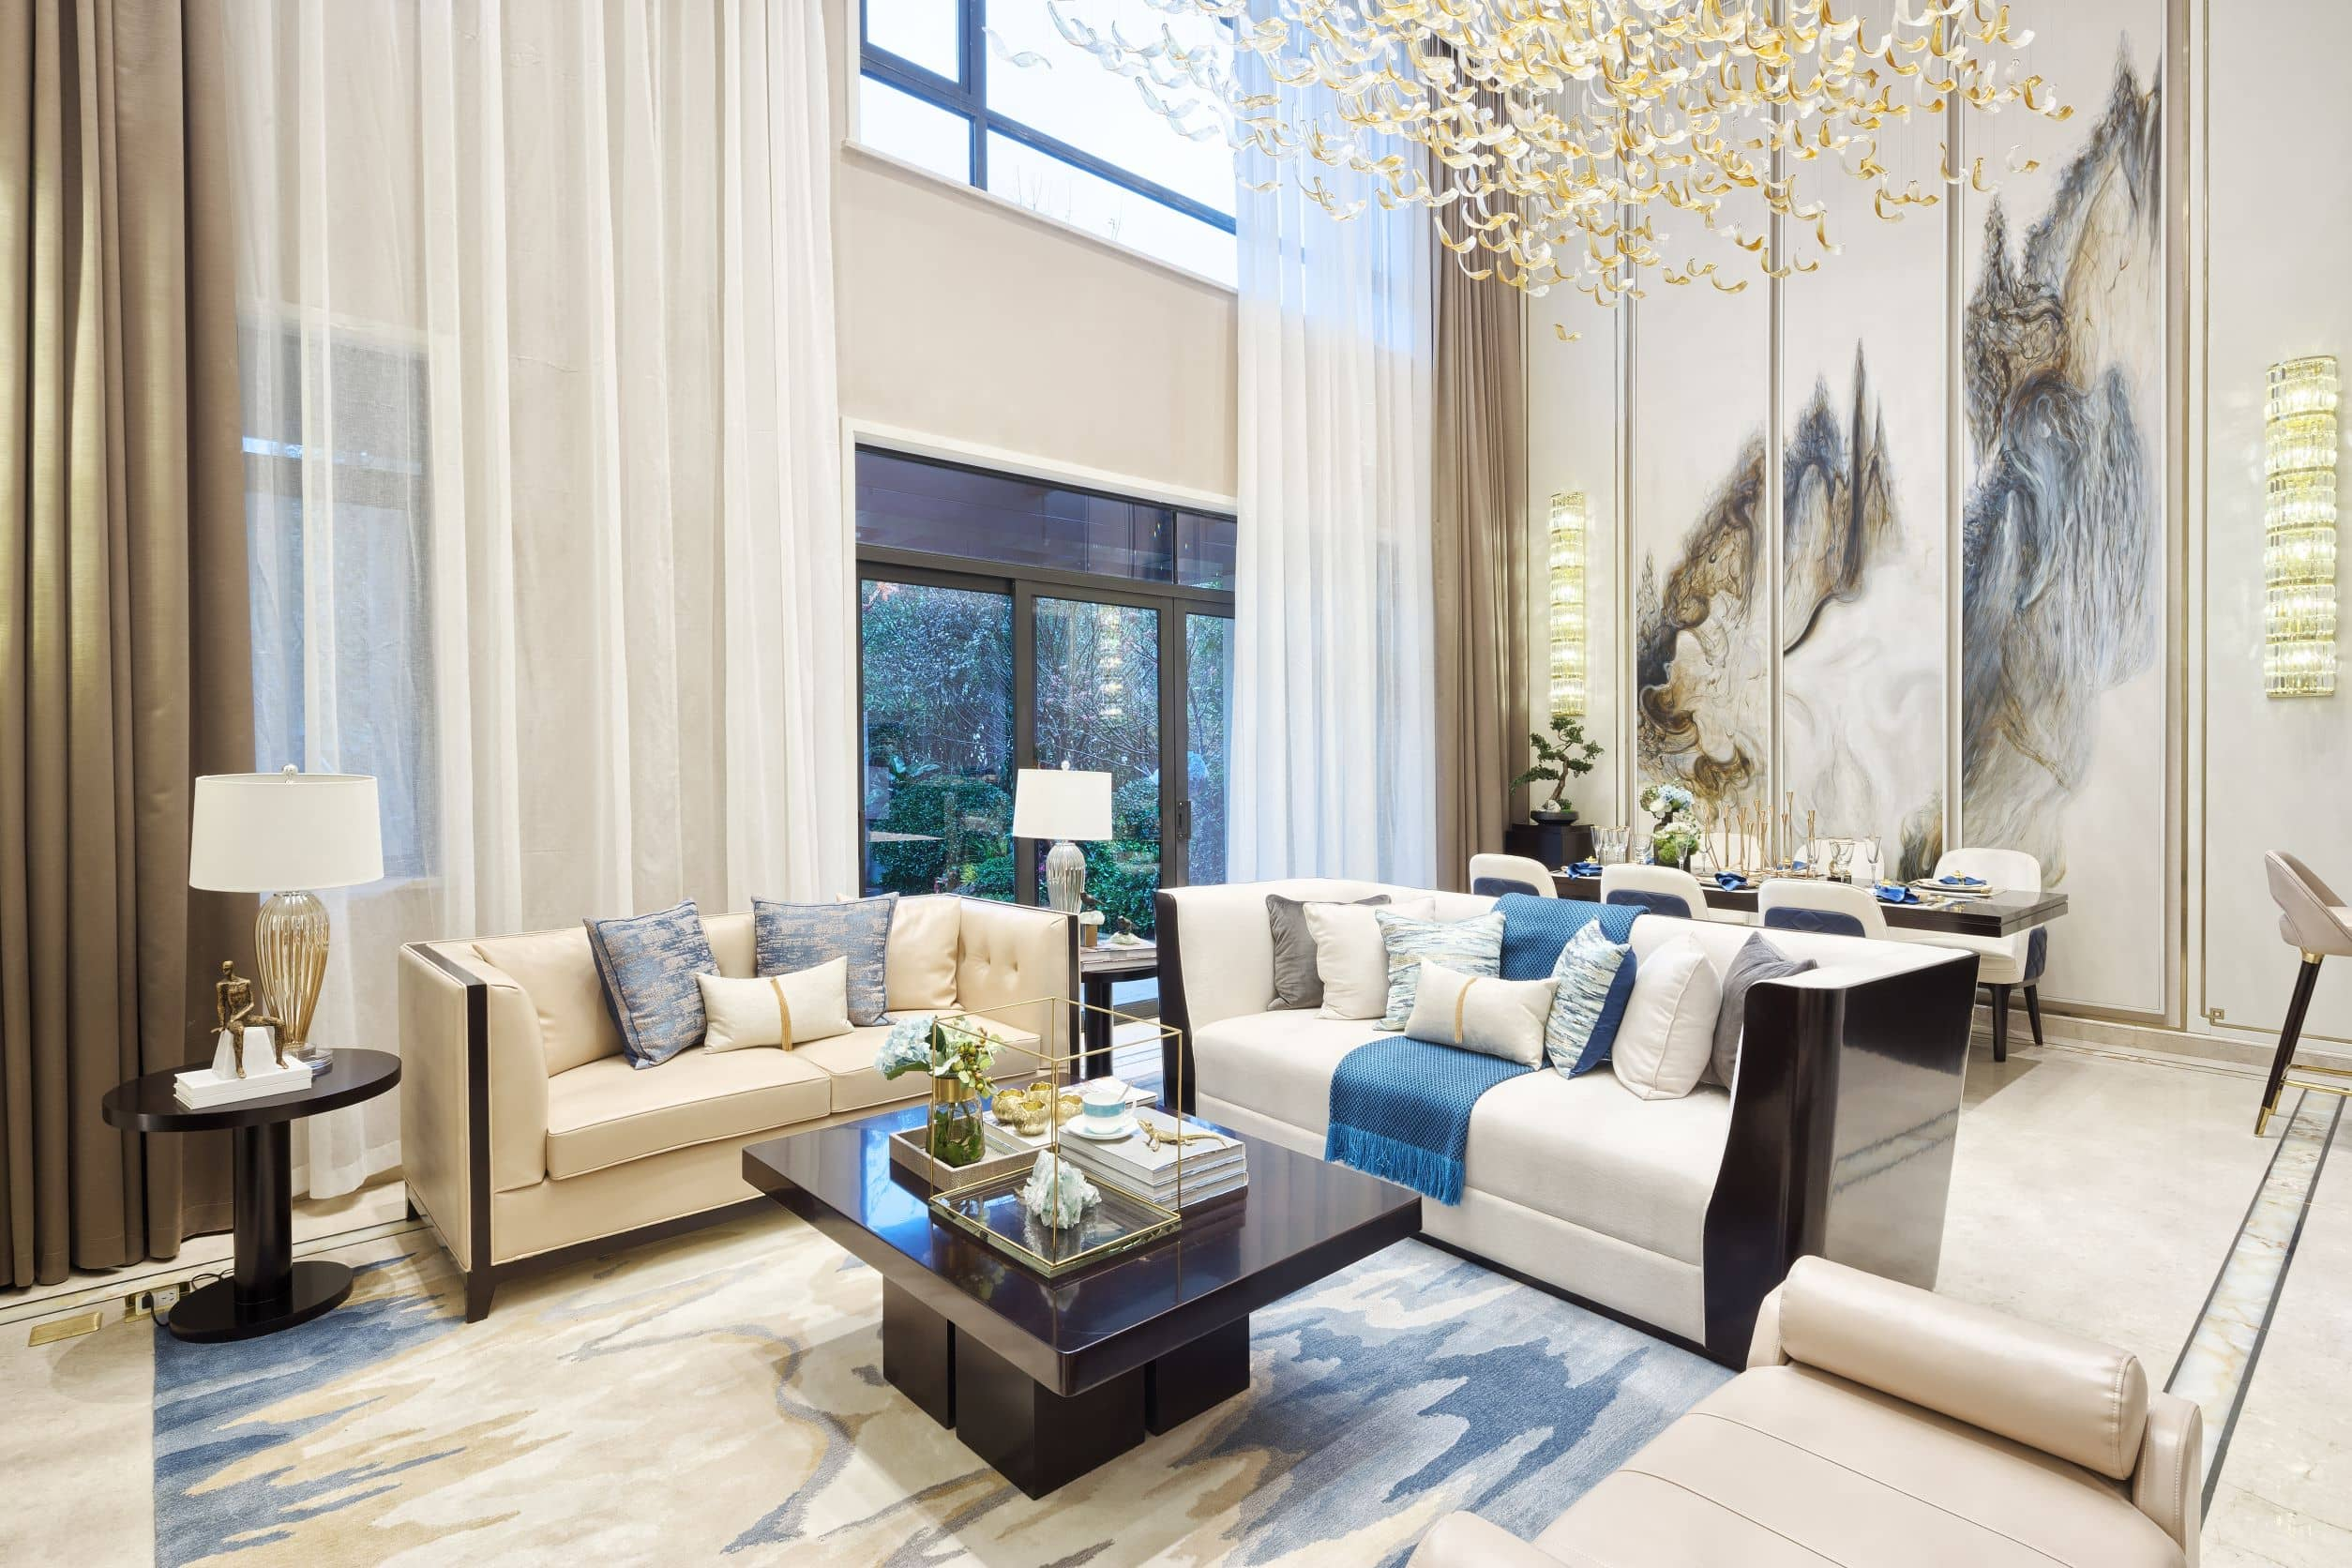 luxury houses for sale in Las Vegas with a pool